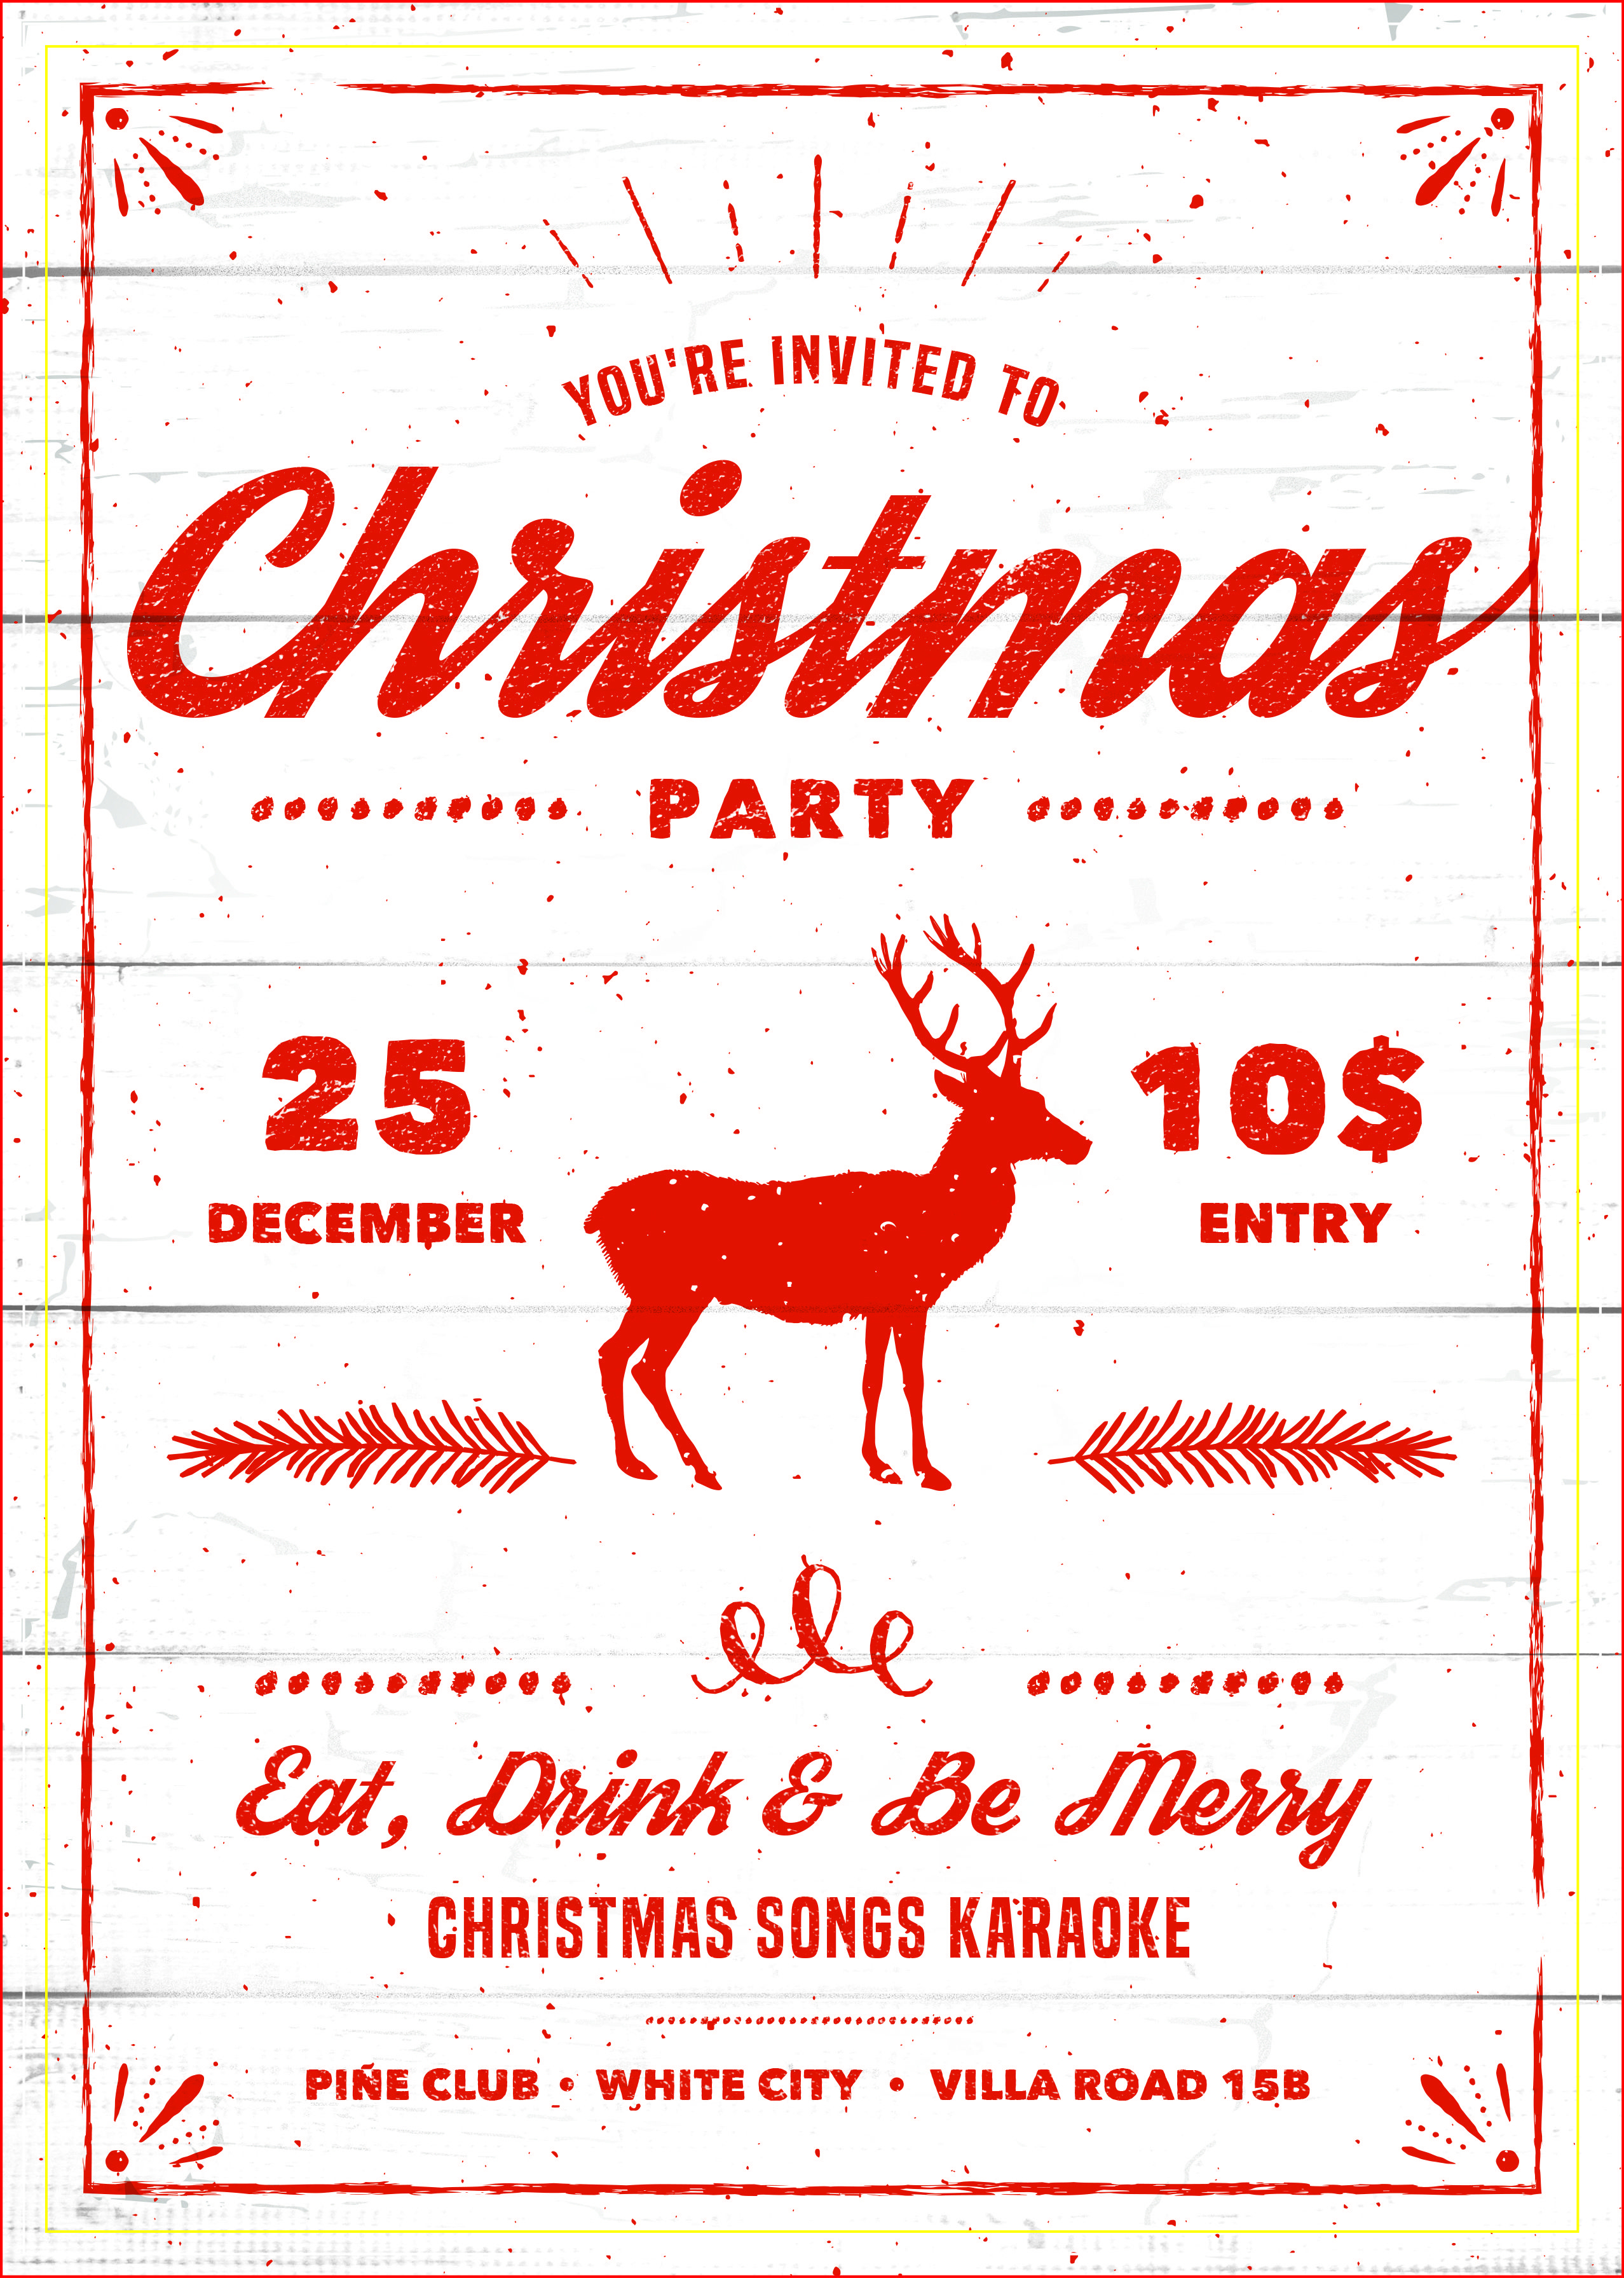 Best Christmas Party Invitations Free Printable | Holiday Ideas - Holiday Invitations Free Printable